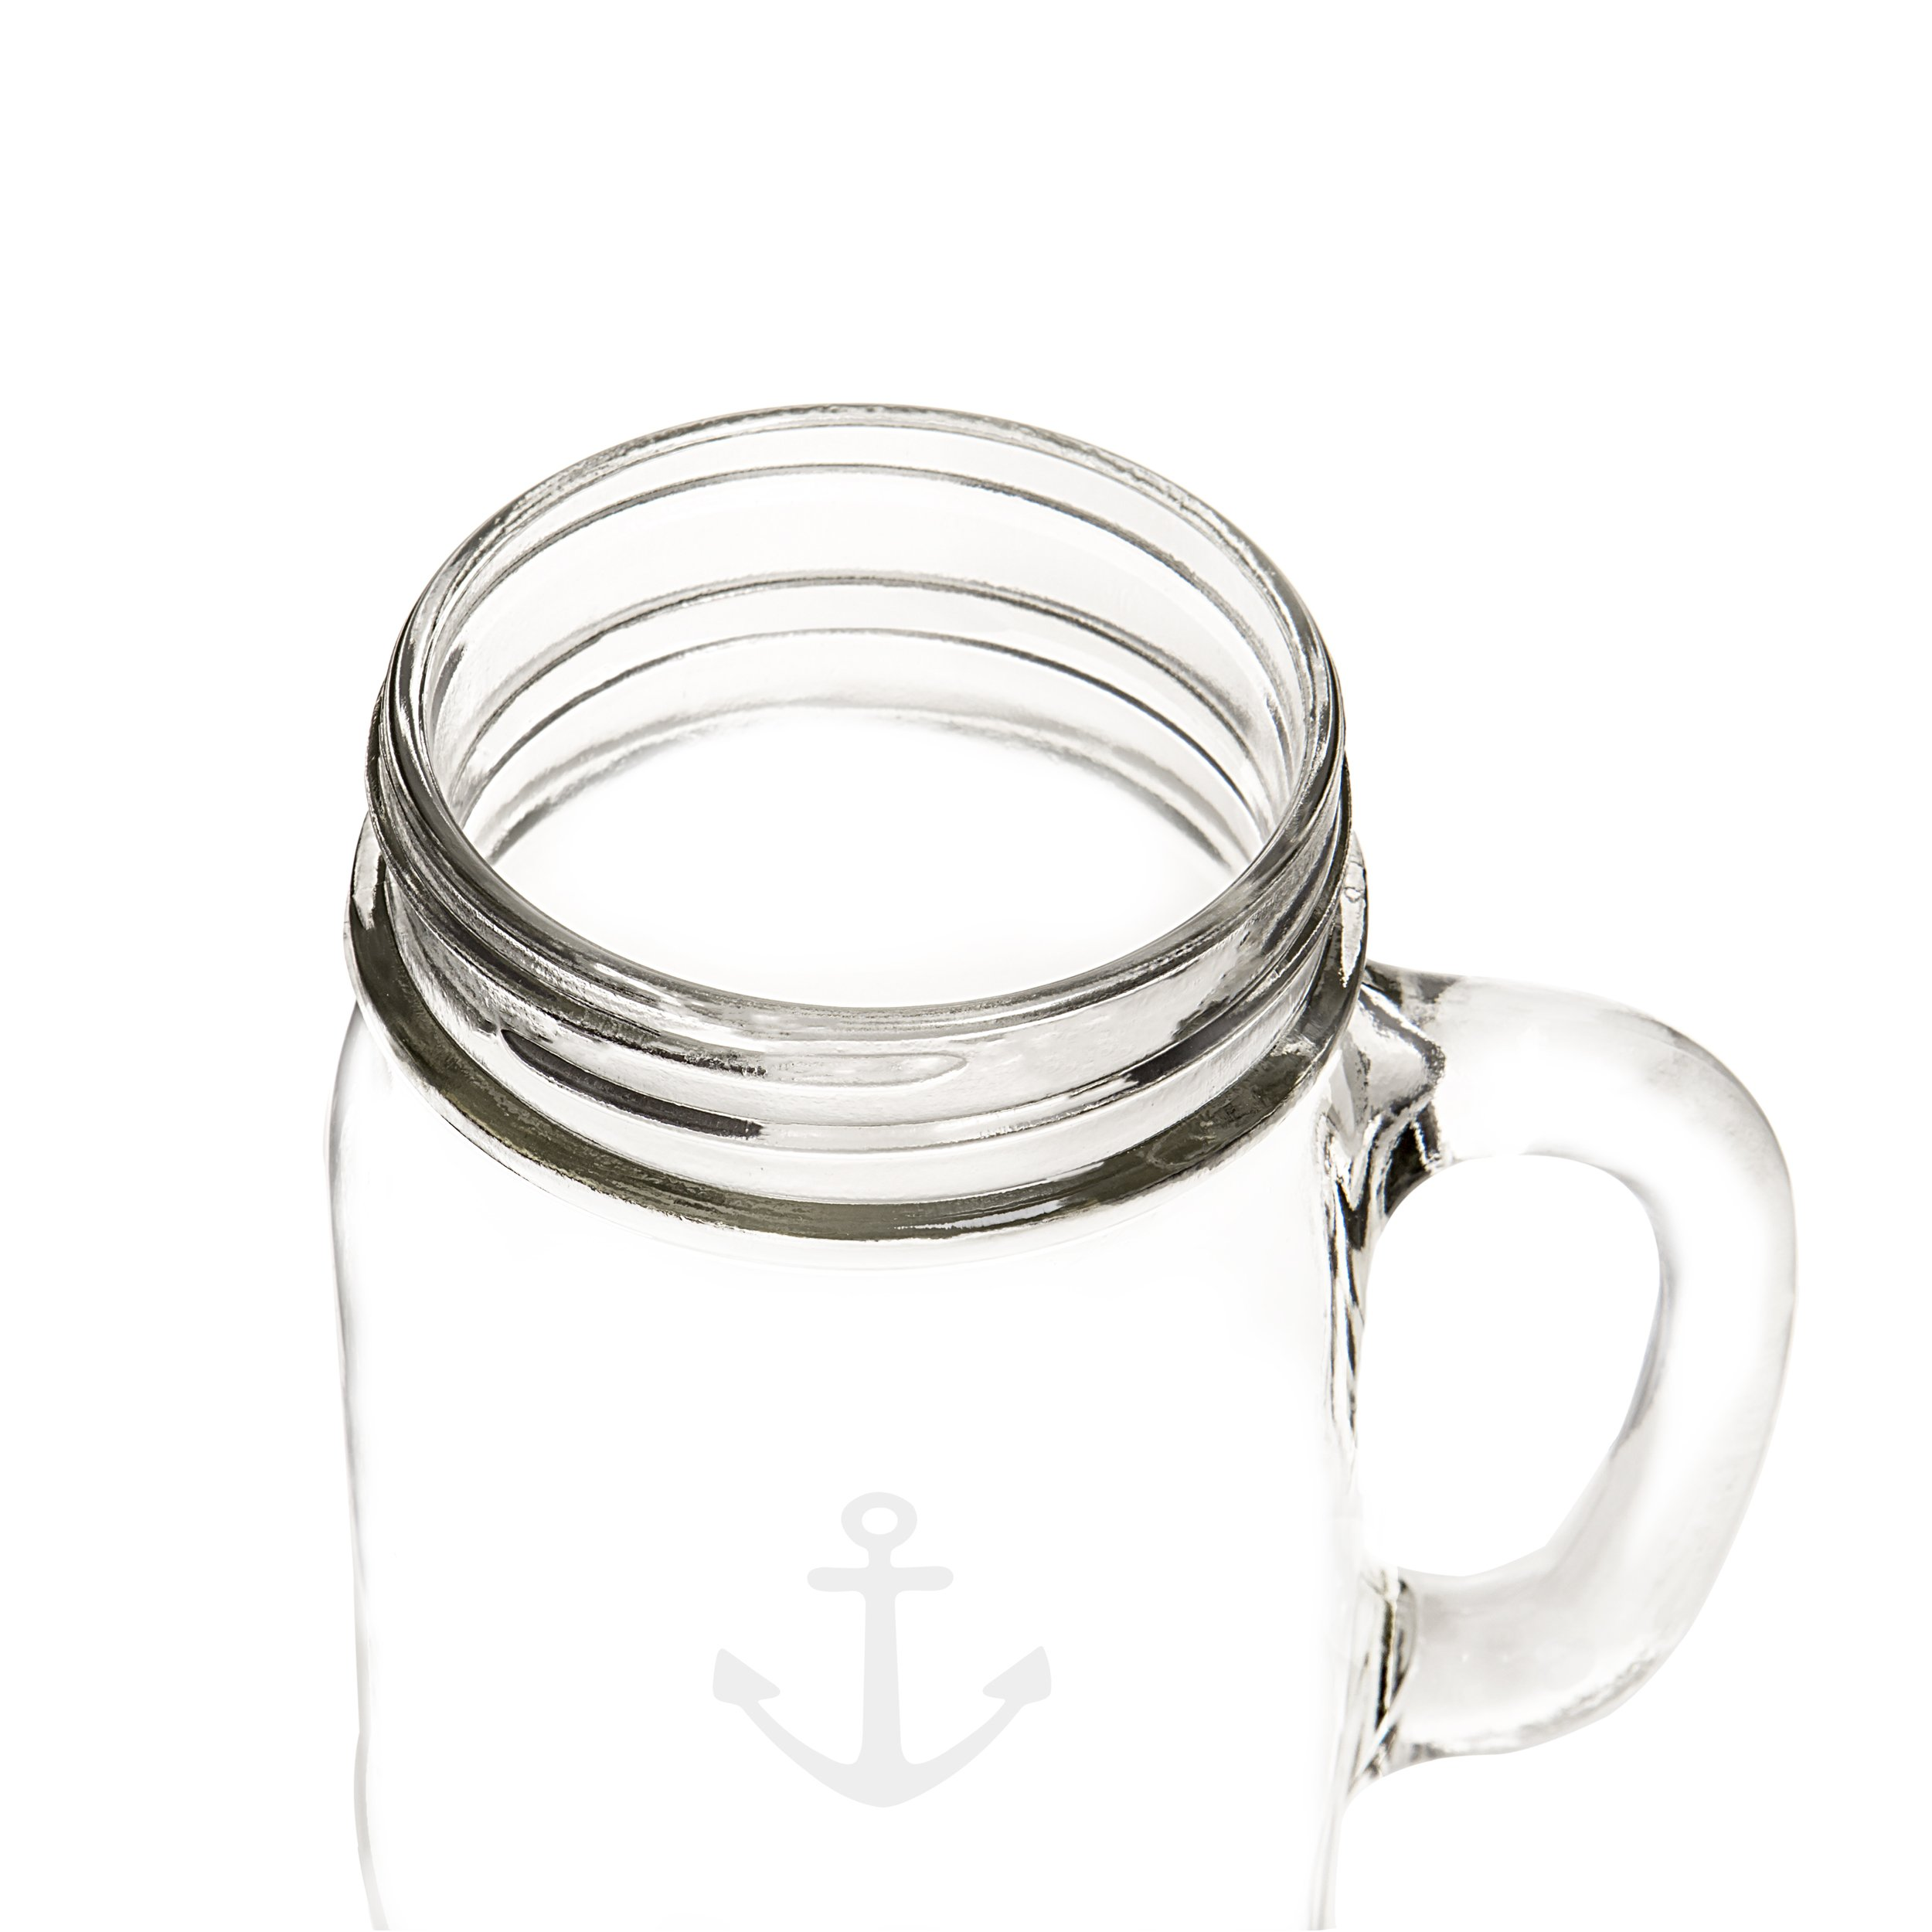 Cathy's Concepts CCA1190 Anchor Old Fashioned Drinking Jars Set Of 4 by Cathy's Concepts (Image #16)